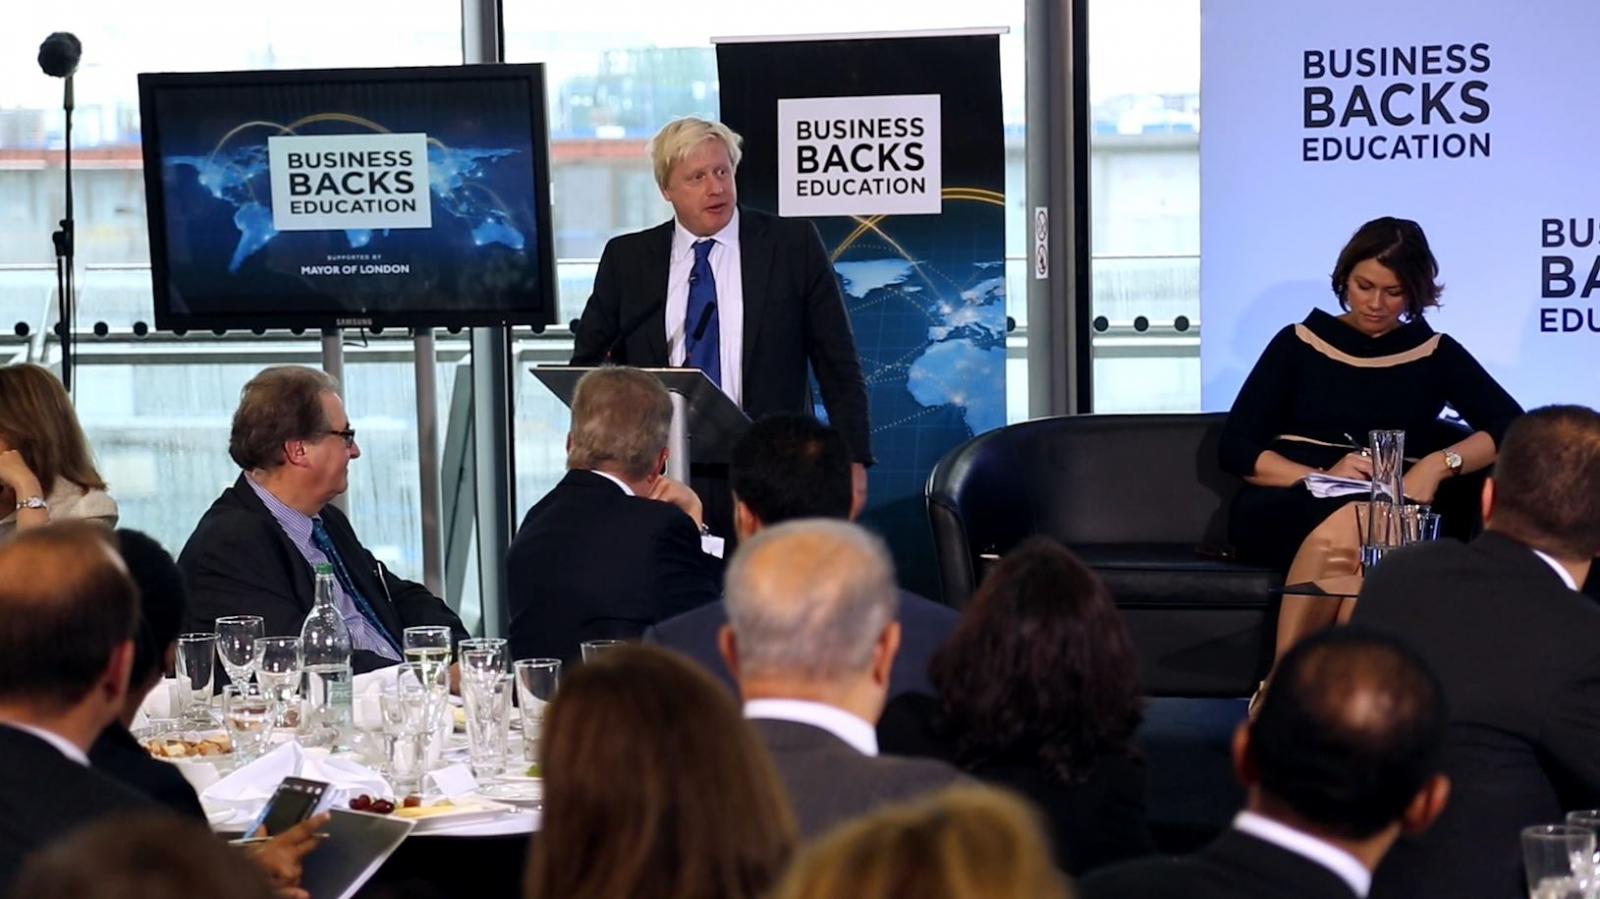 Boris Johnson: UK's Failure to Prepare Children for the World of Work is Criminal